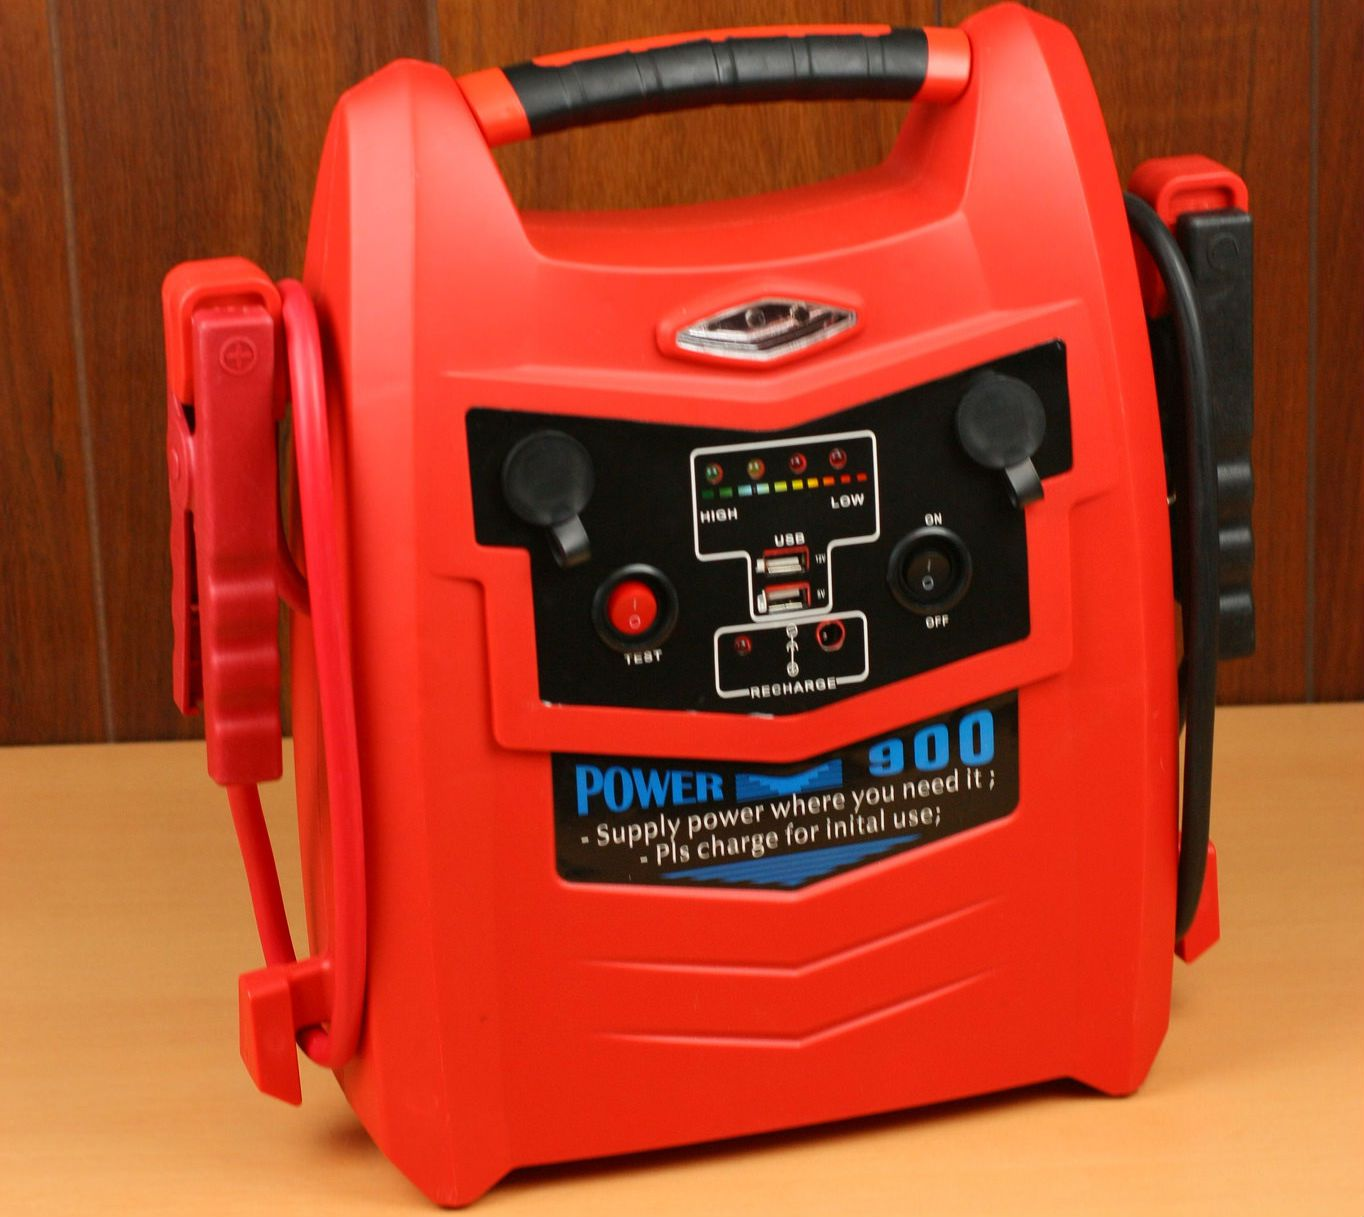 10 Terrific Tailgating Technologies Out In The Stadium Battery Is Source Of Electricity Our Portable Power Back Jump Box